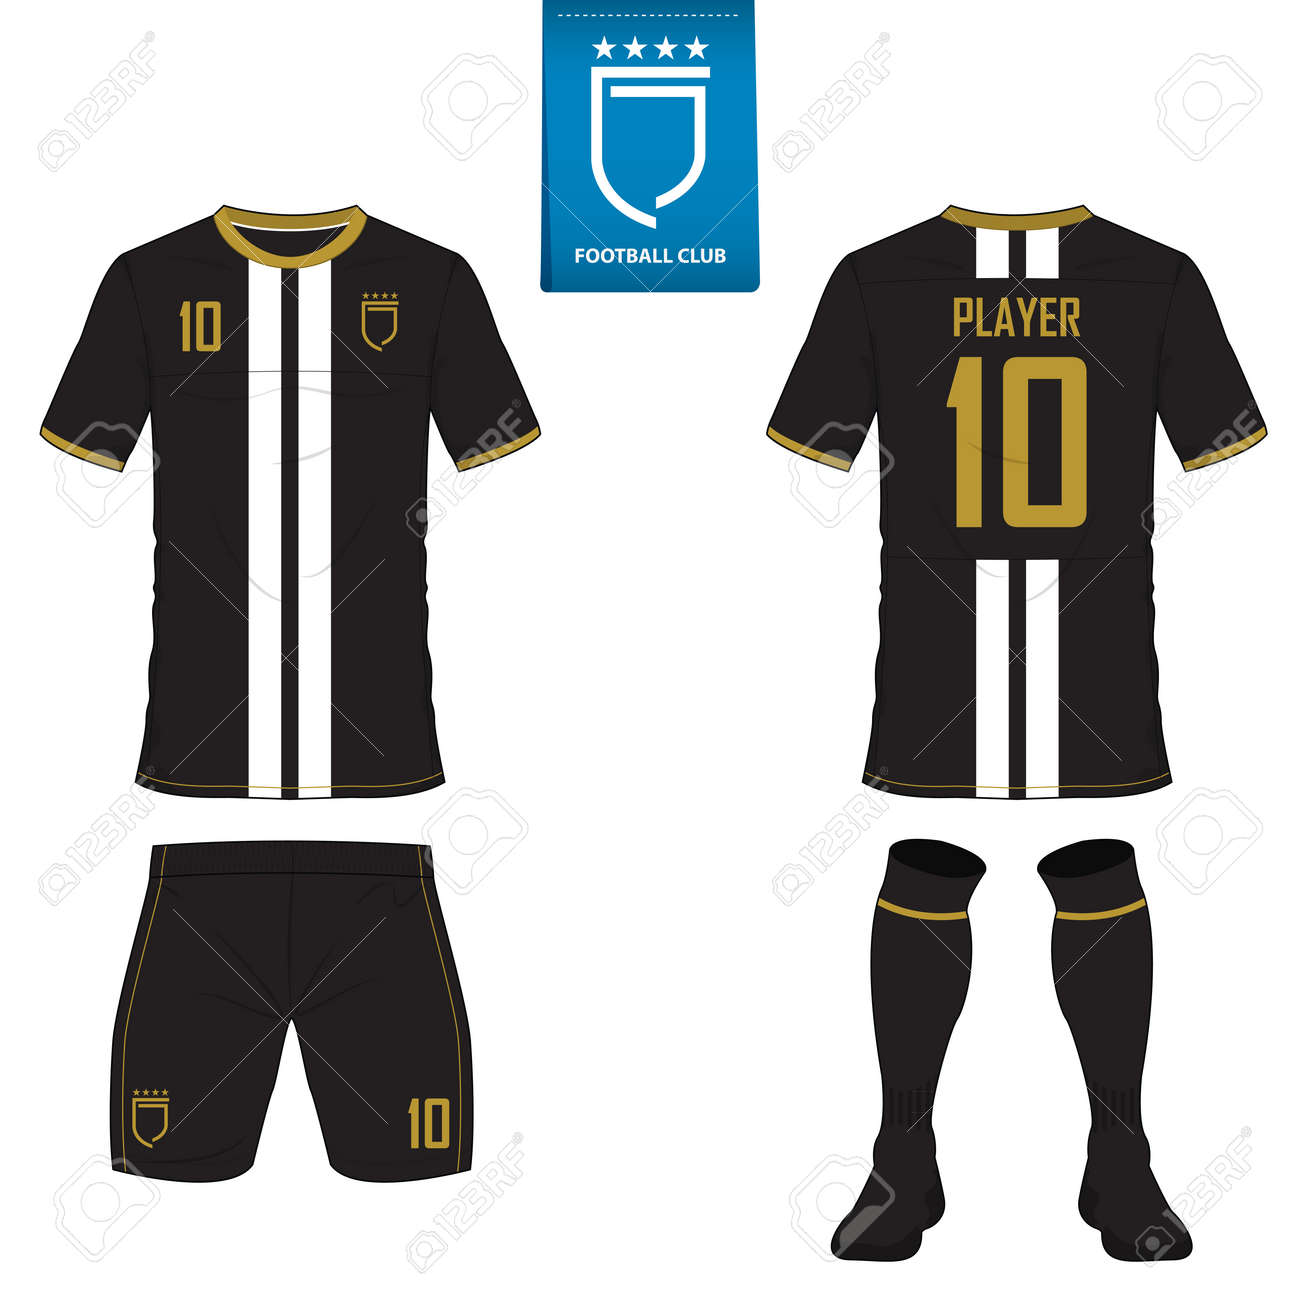 Set of soccer kit or football jersey template for football club. Flat football logo on blue label. Front and back view soccer uniform. Football shirt mock up. Vector Illustration. - 70758176